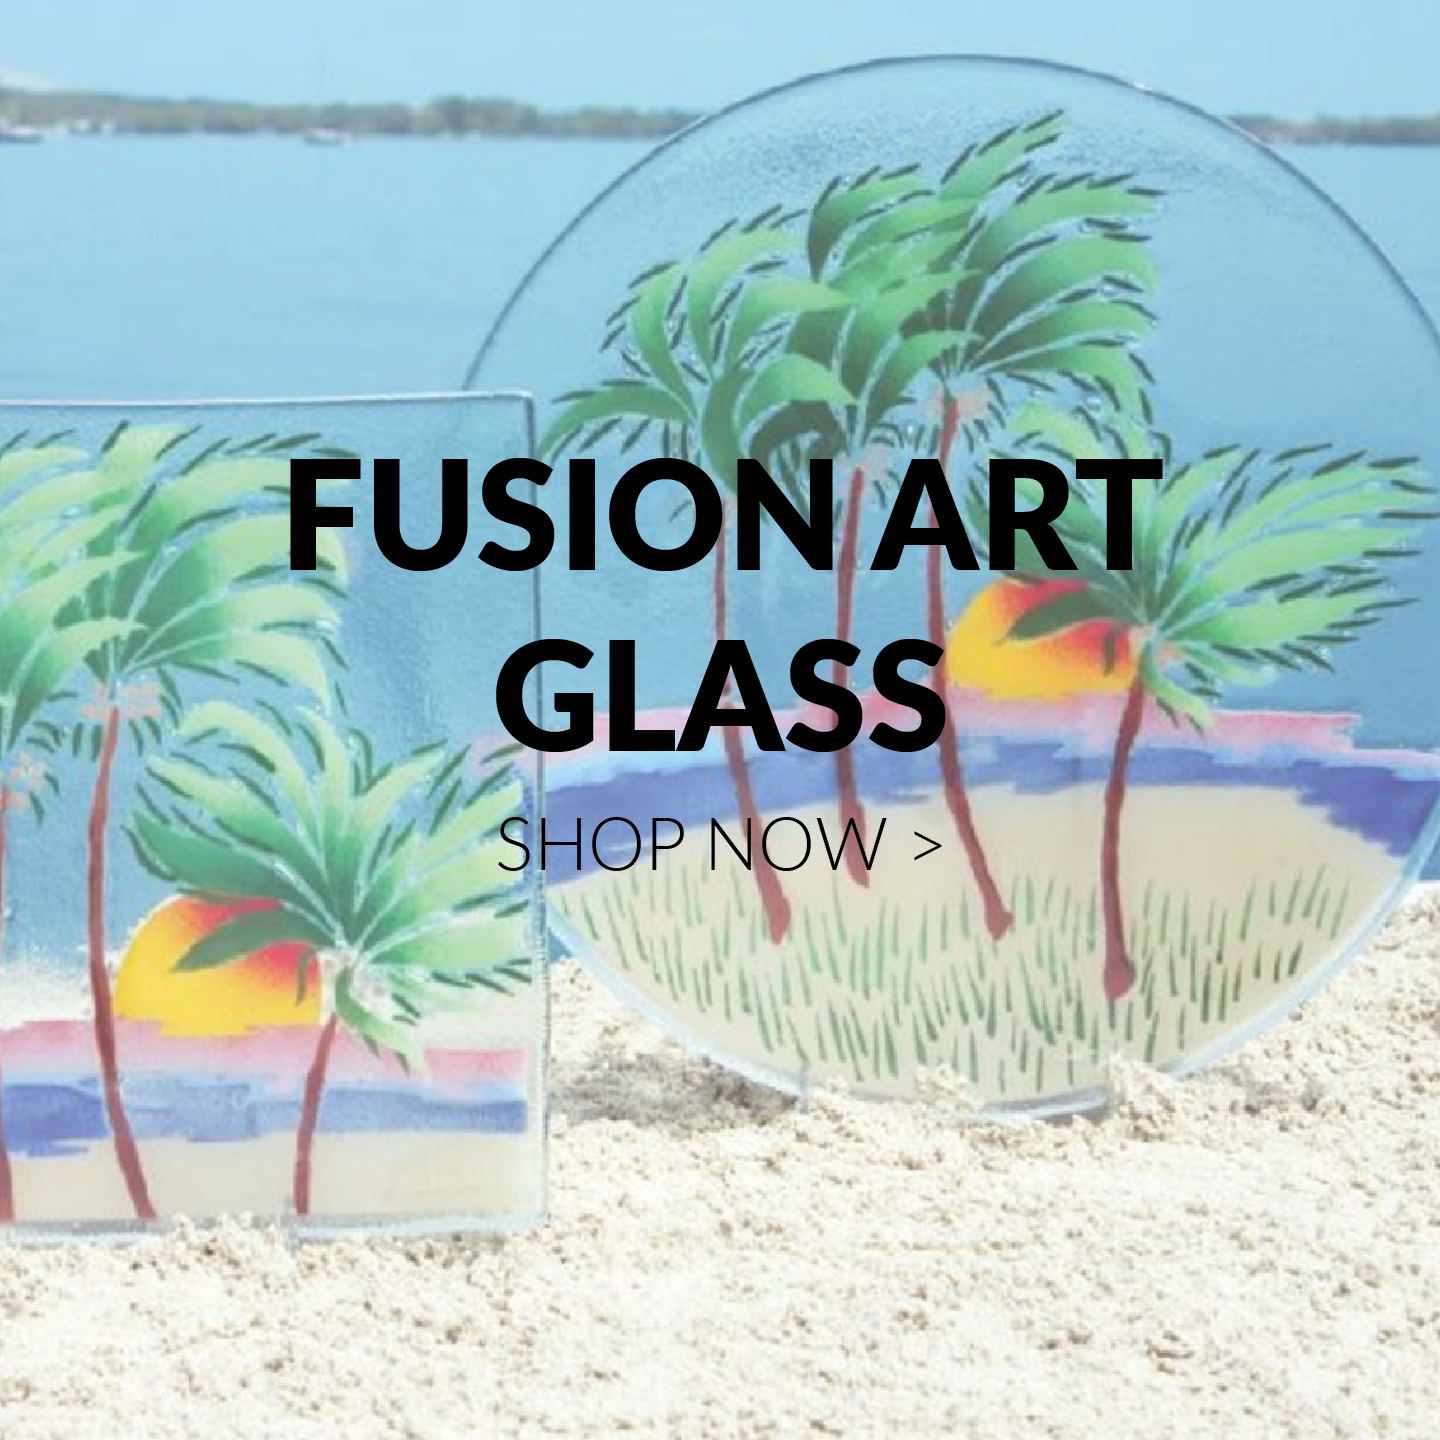 Fusion Art Glass by William McGrath